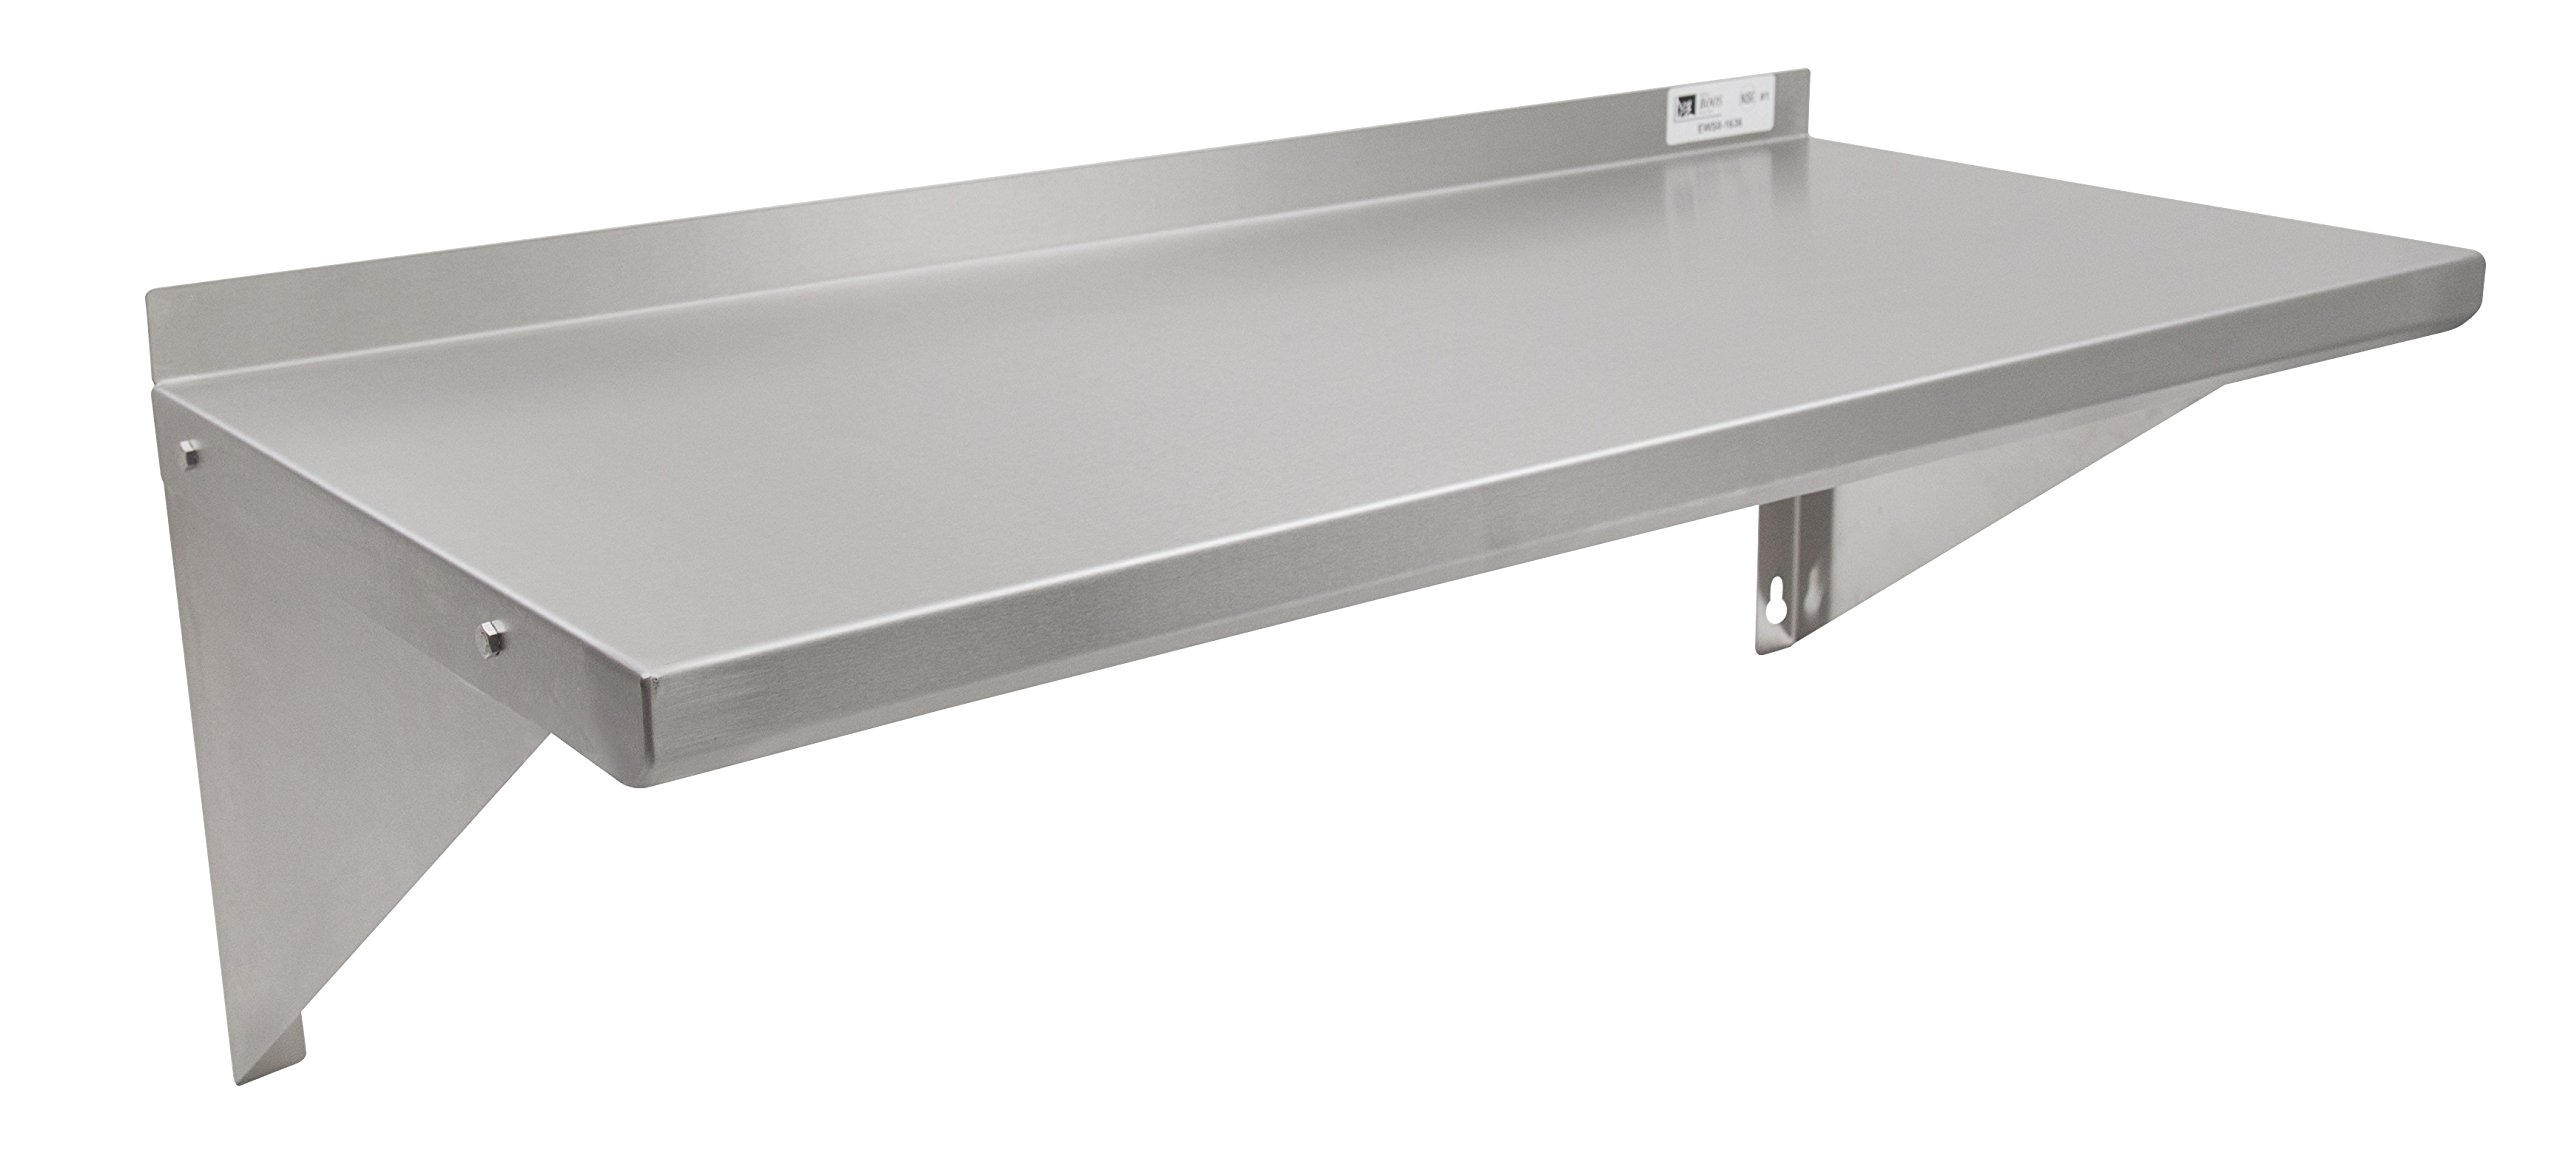 shelf il wall fullxfull ledge pictures stainless listing photos steel and for floating zoom in